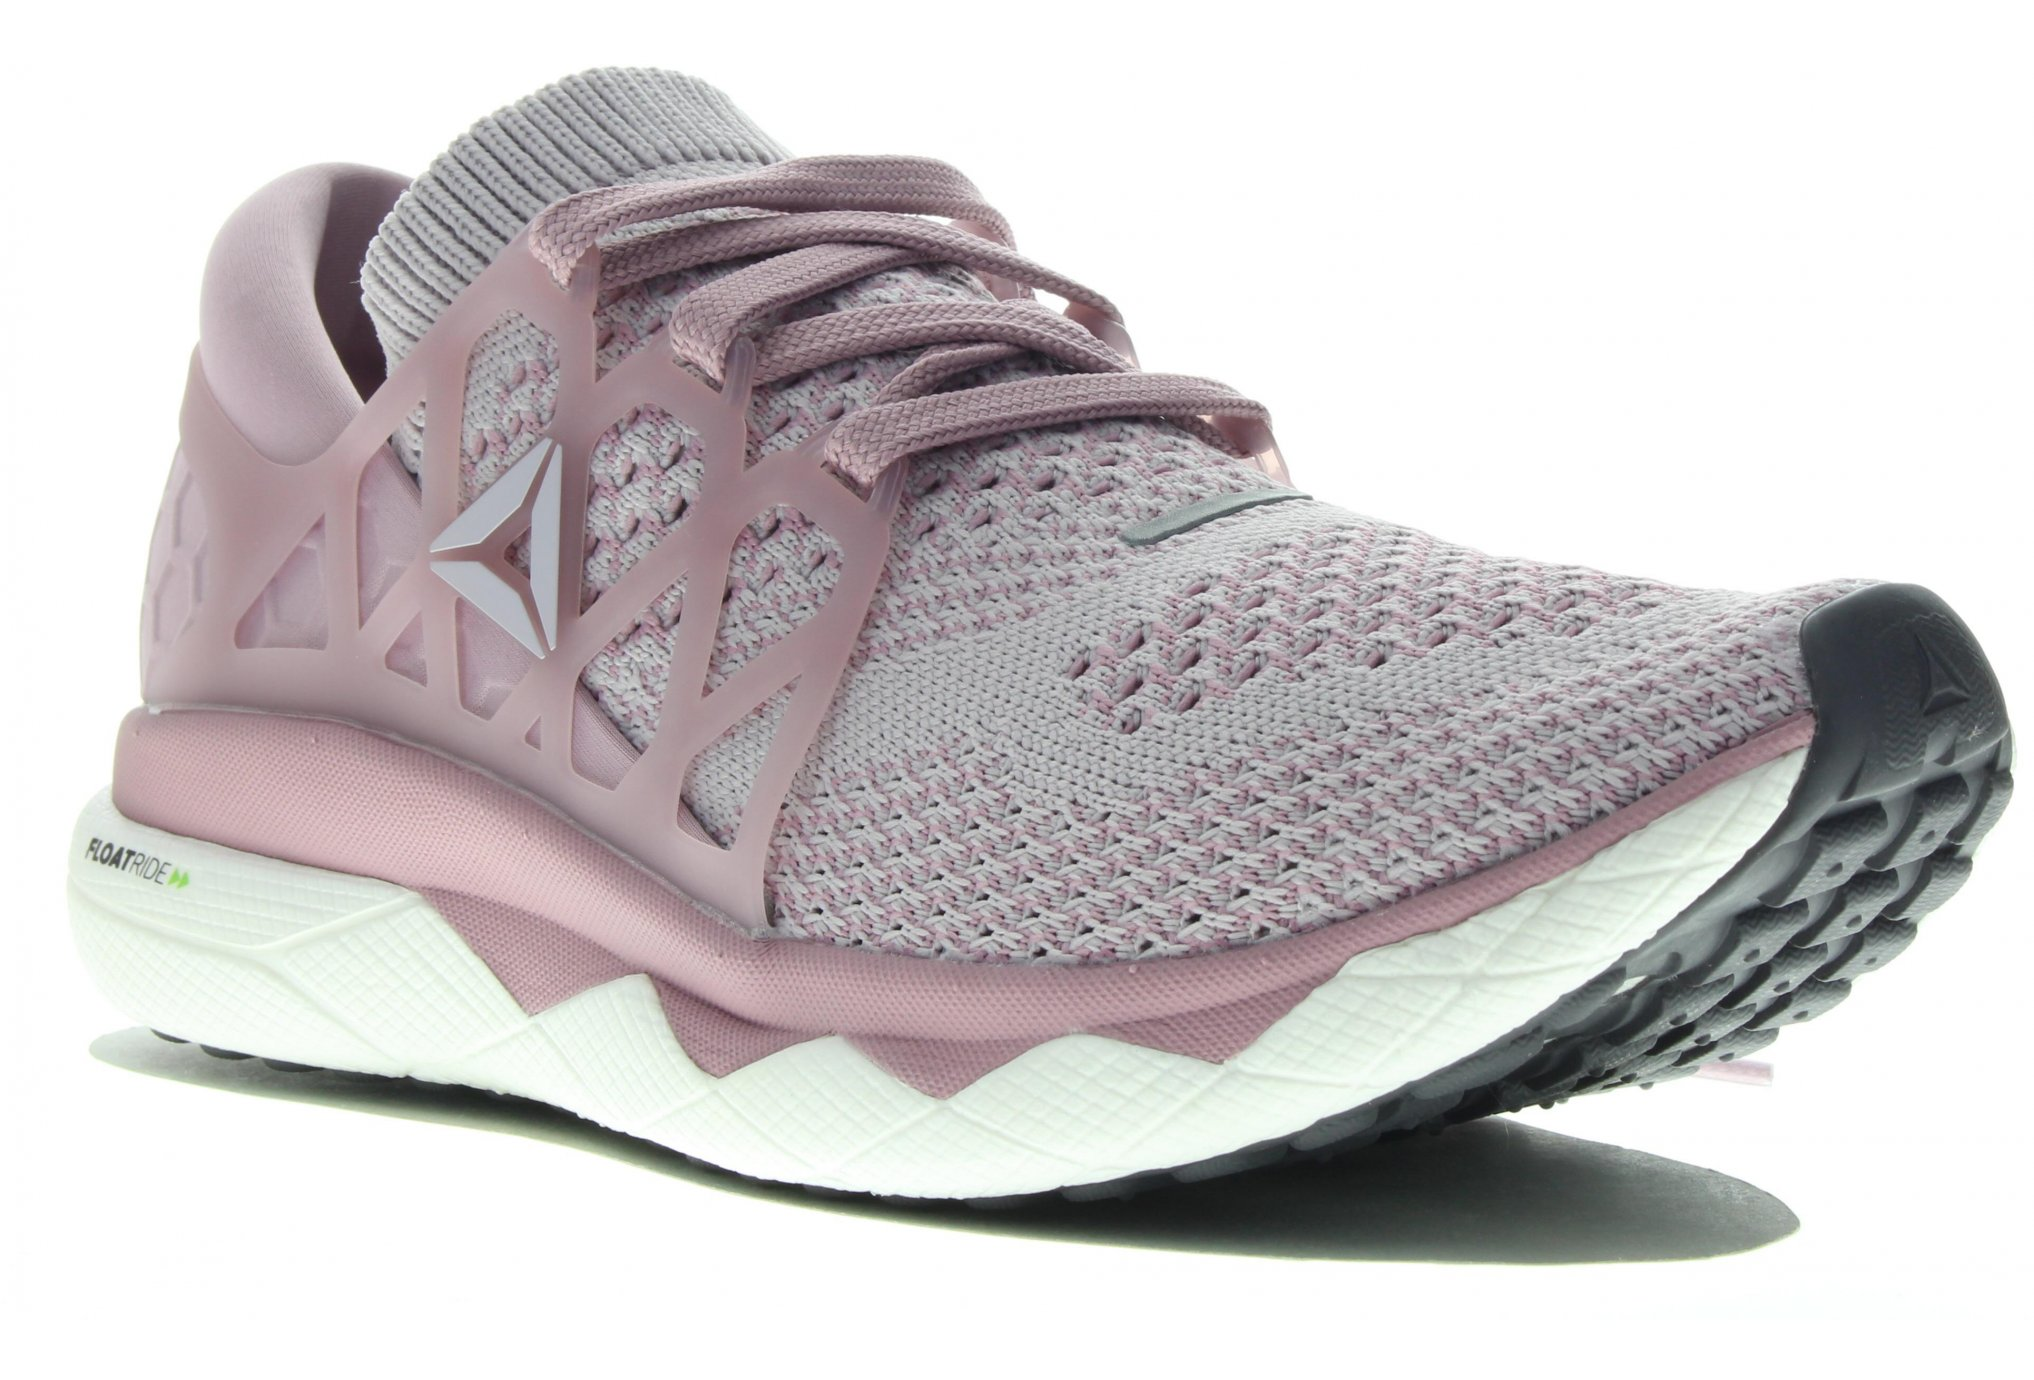 Reebok Floatride Run Ultraknit W Chaussures running femme